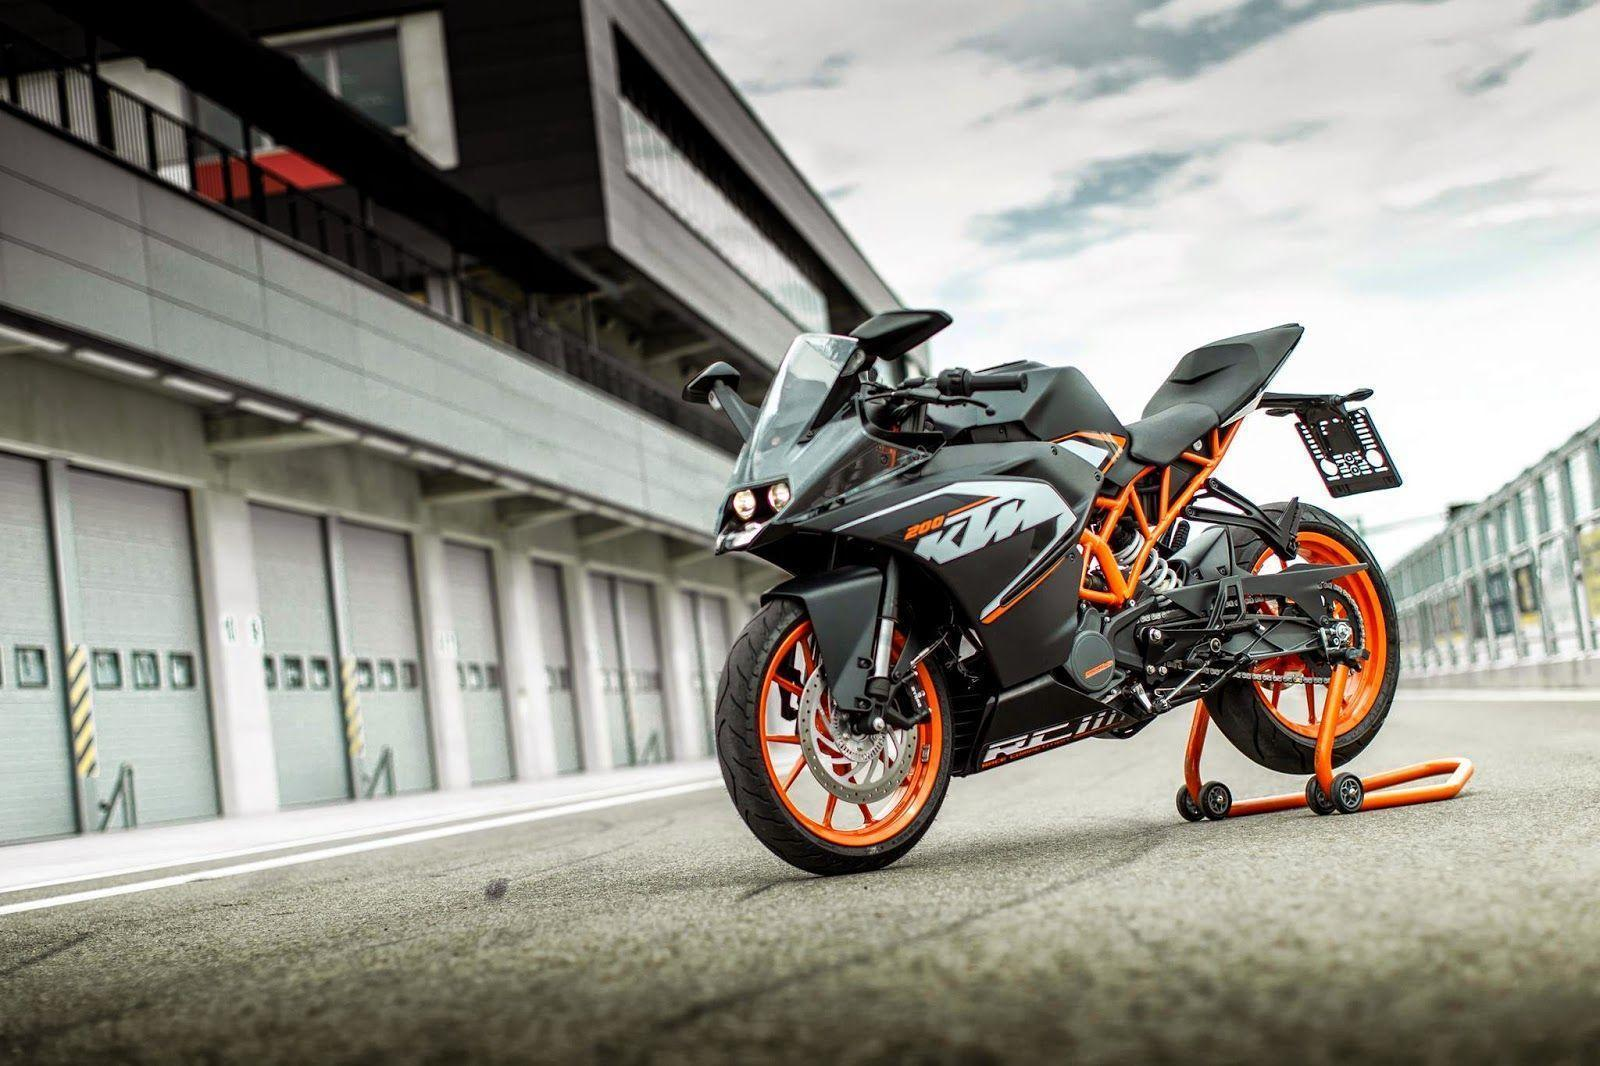 ktm rc 200 hd wallpapers image